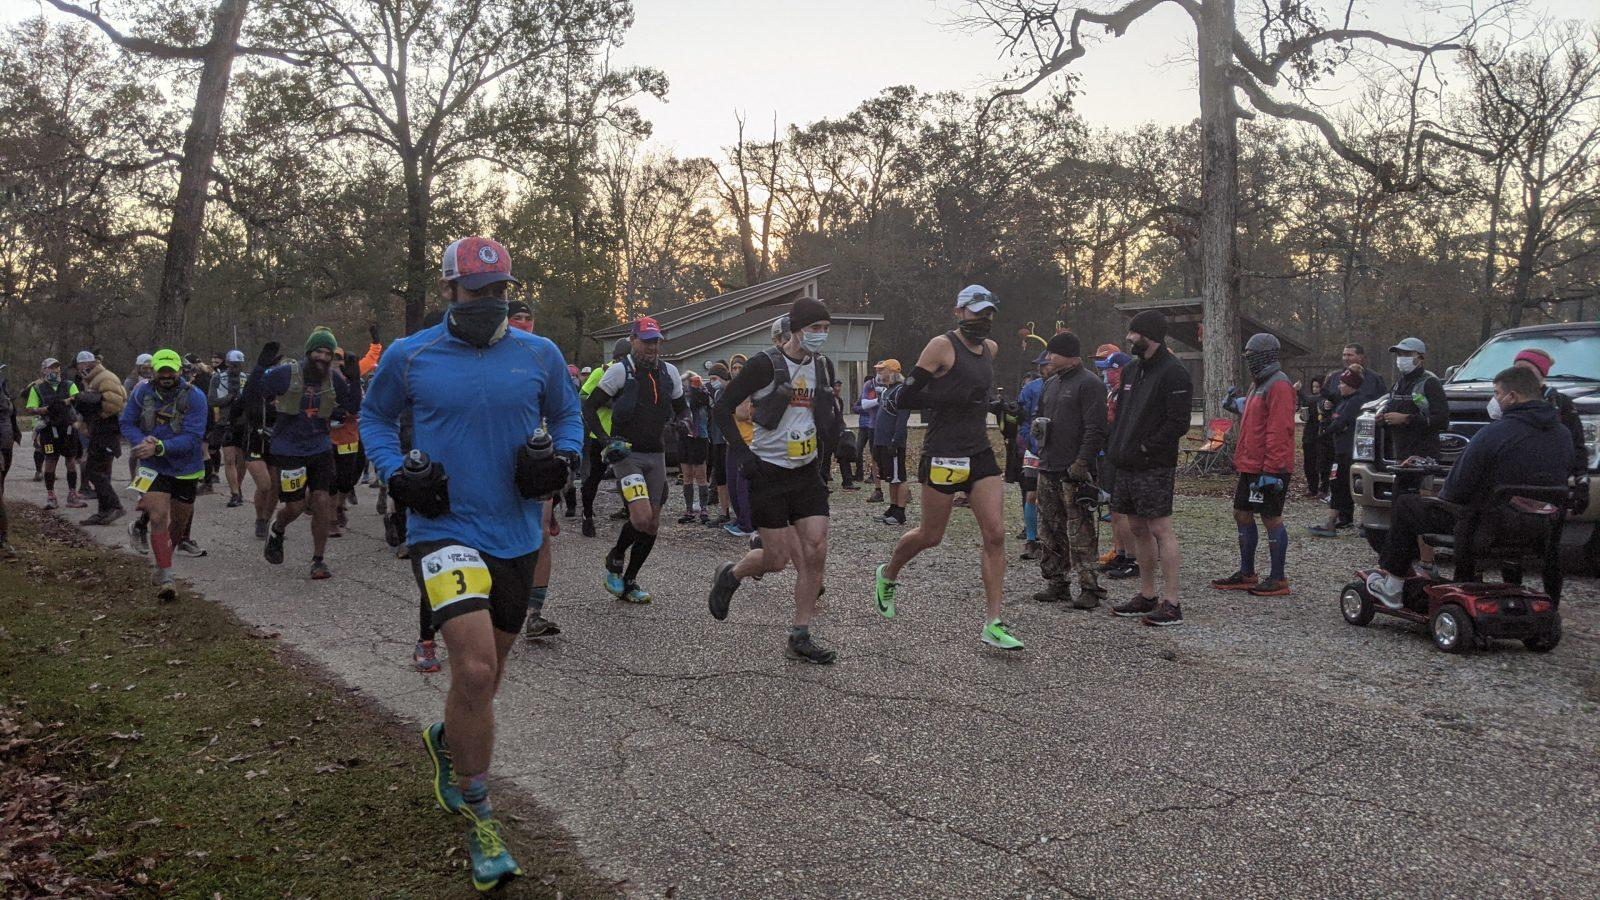 100 mile runners at the beginning of the loup garou trail run in louisiana